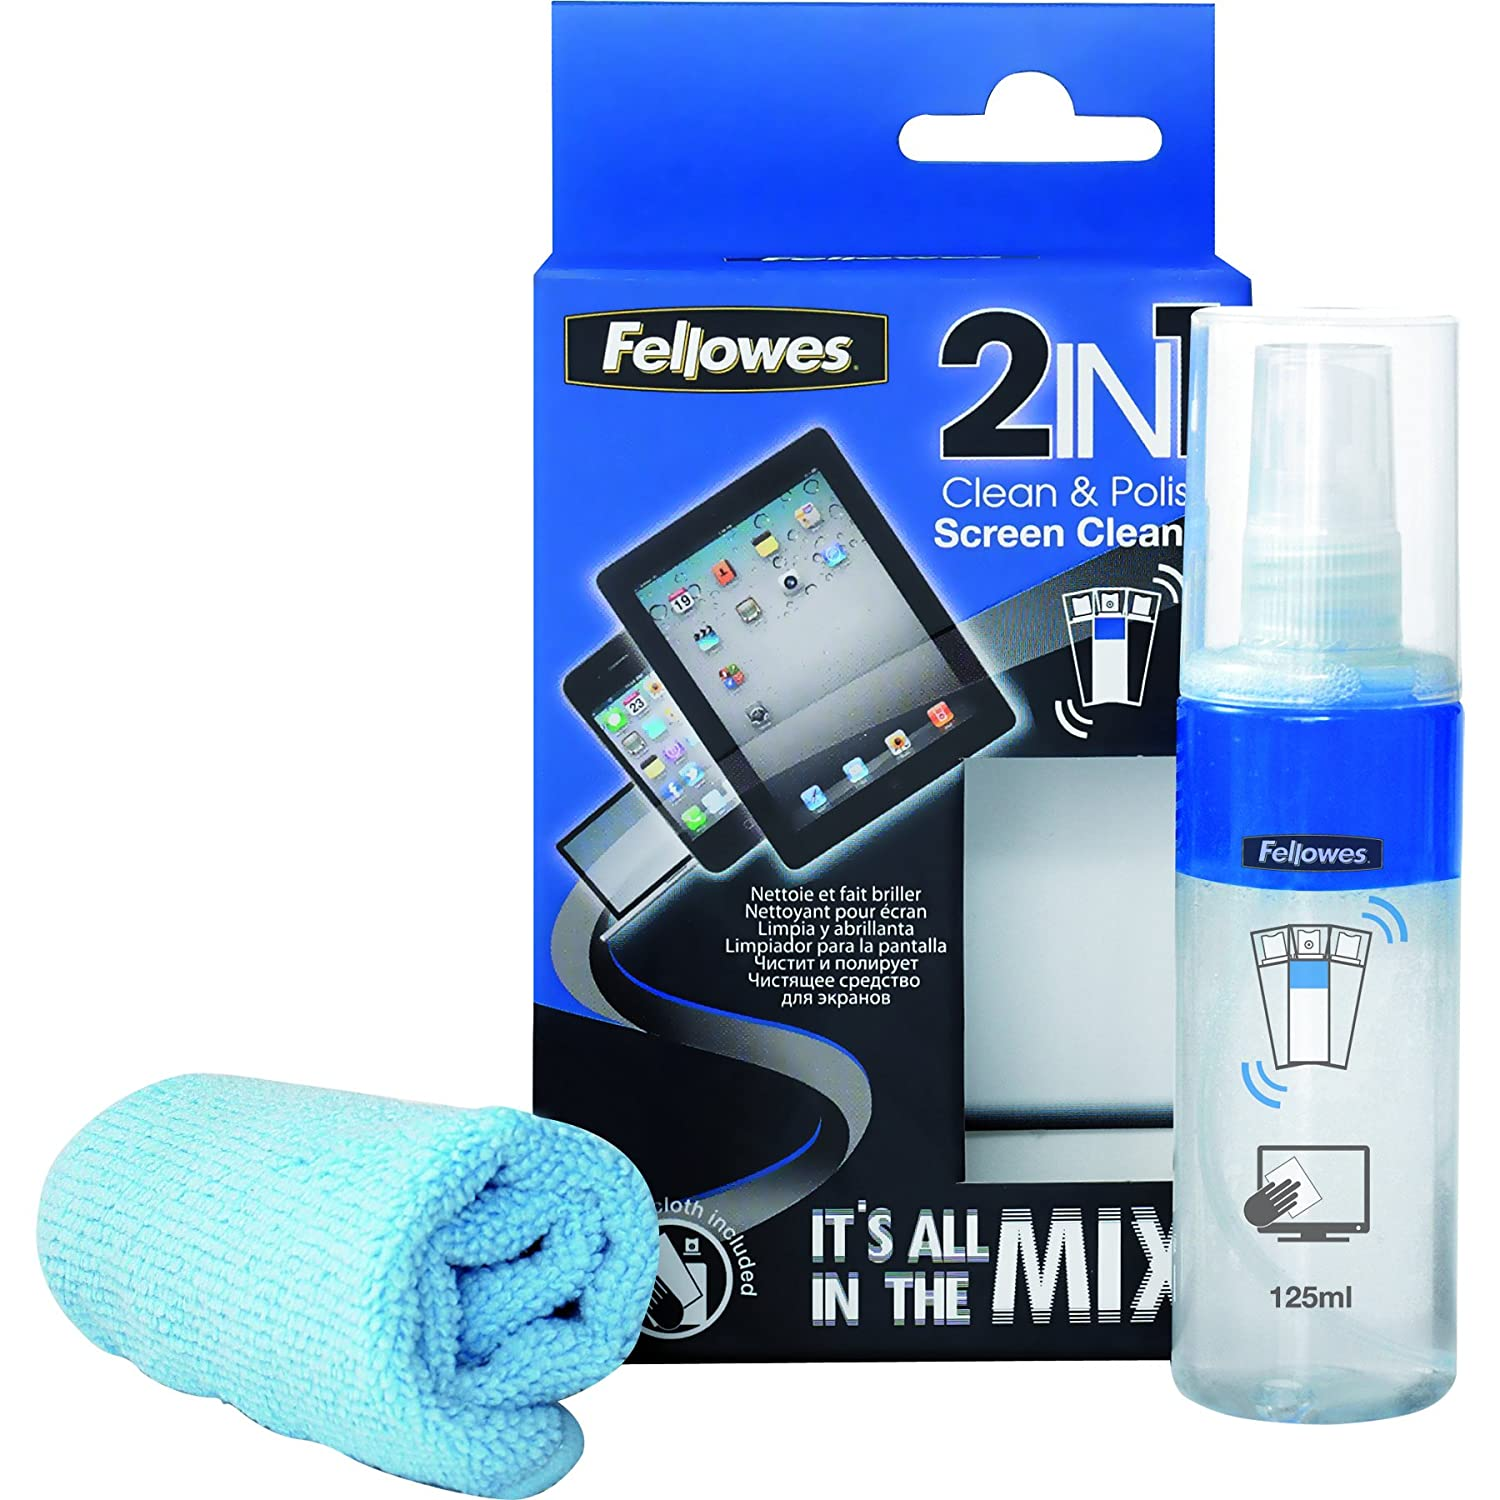 Amazon.com: Fellowes 2-in-1 Clean and Polish Kit includes 125ml Screen Cleaner with Micro Fibre Cloth: Health & Personal Care